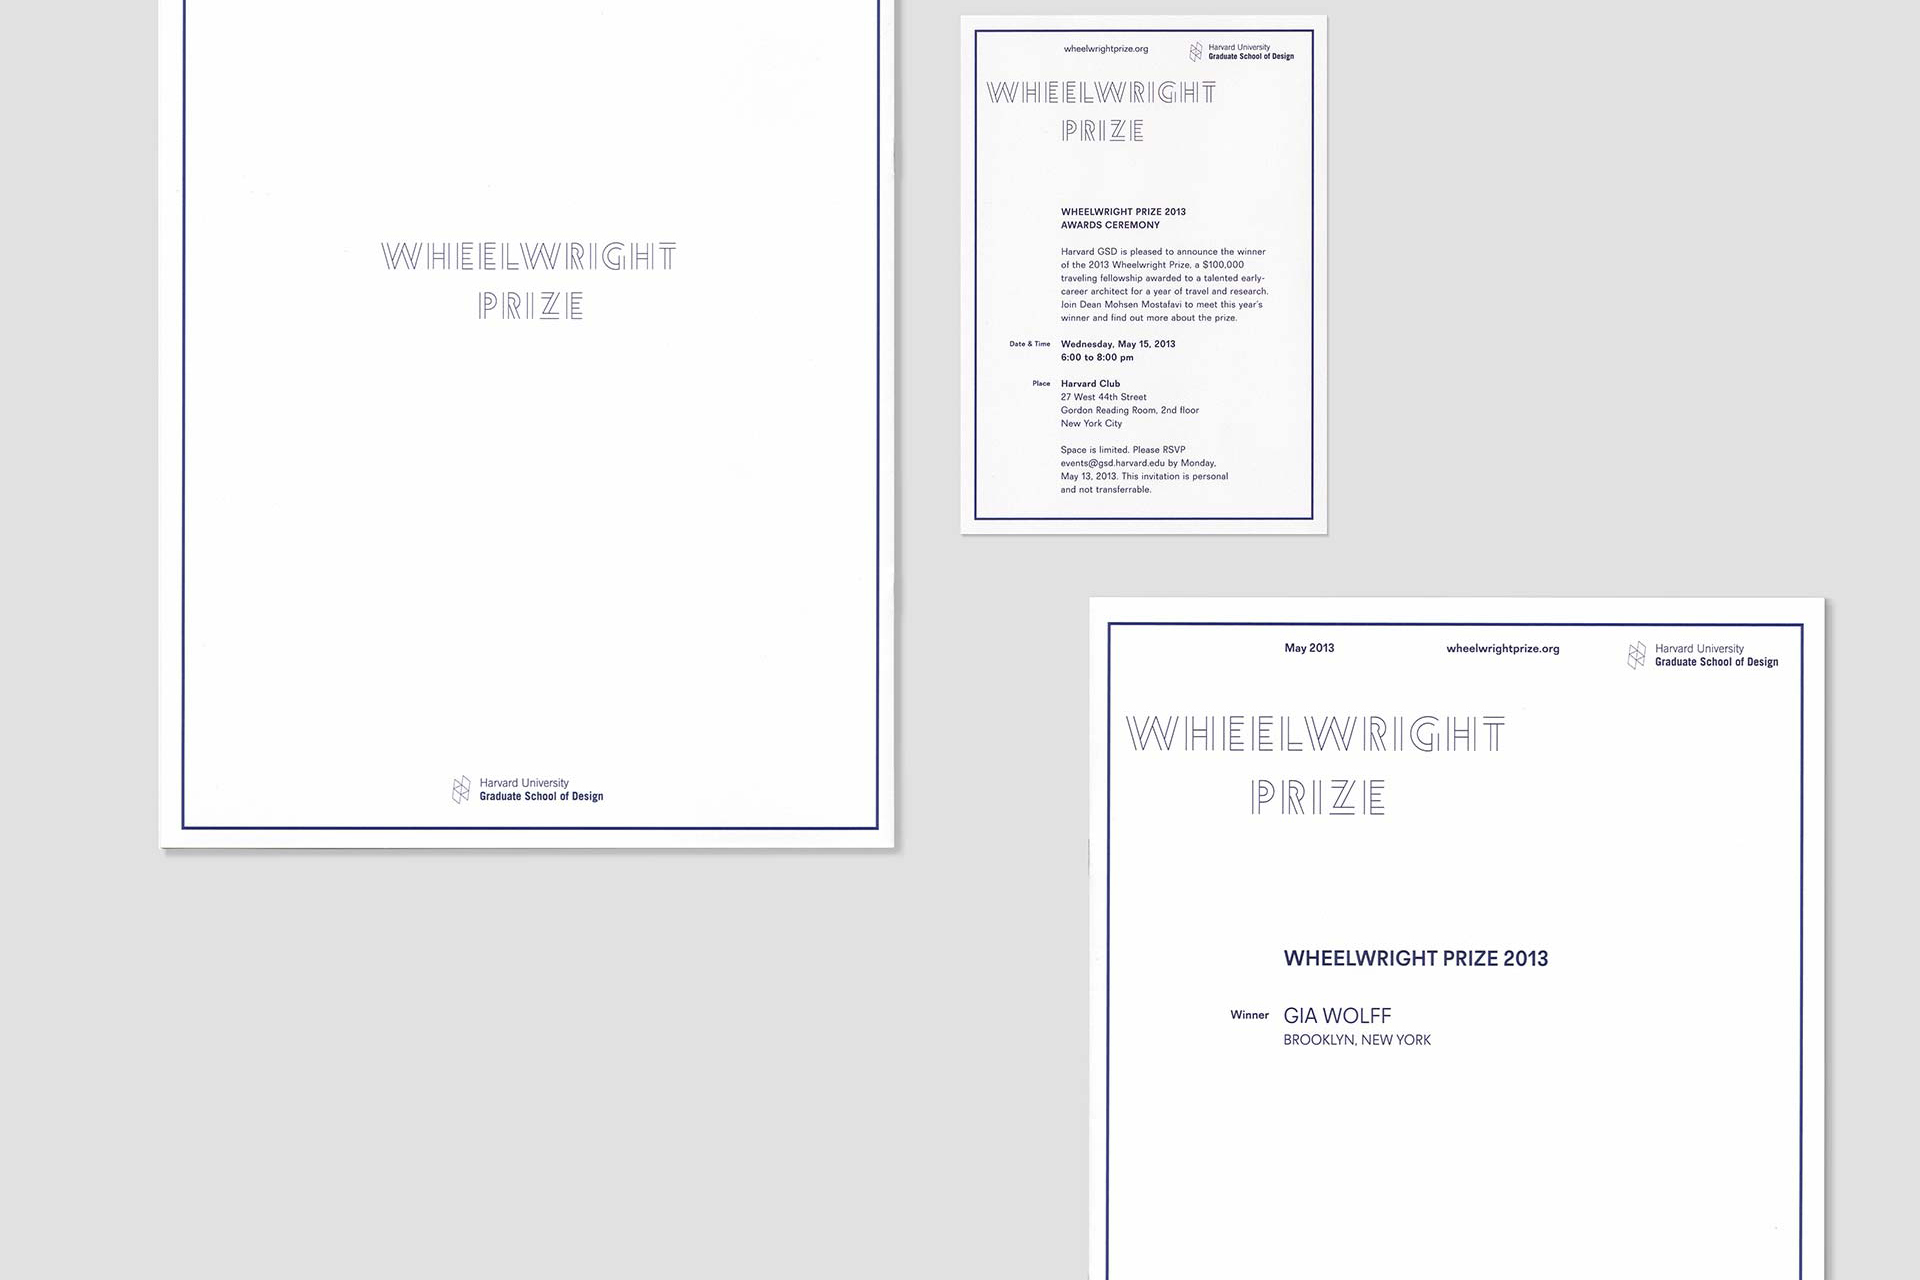 Wheelwright Prize